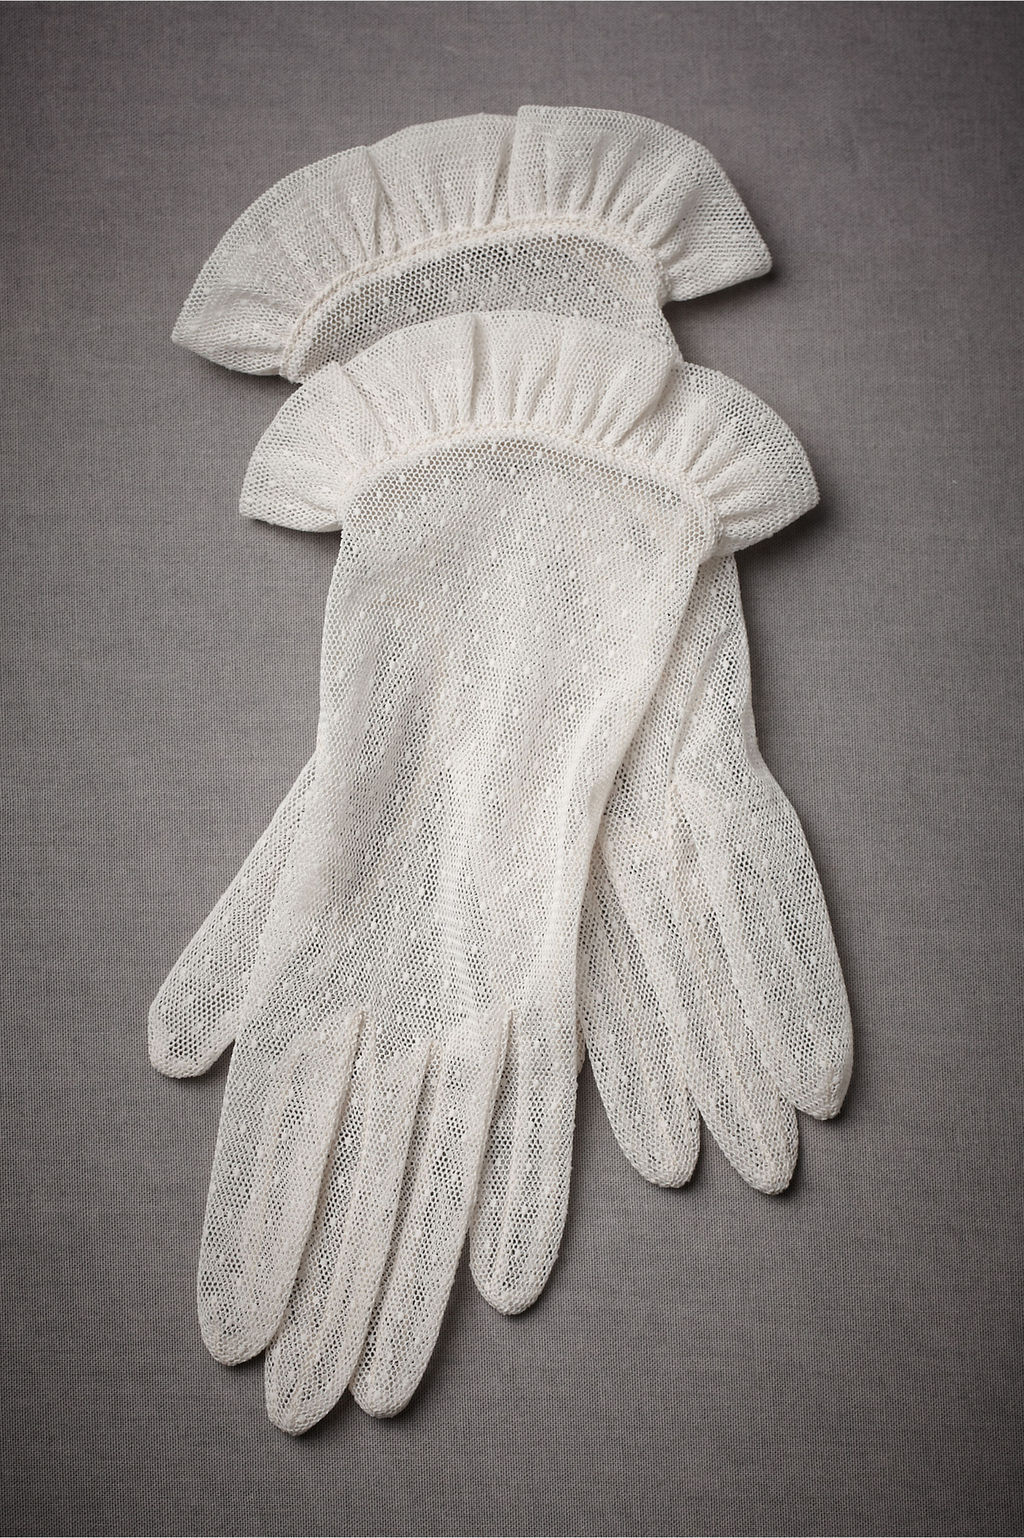 bridal accessories vintage inspired gloves 5